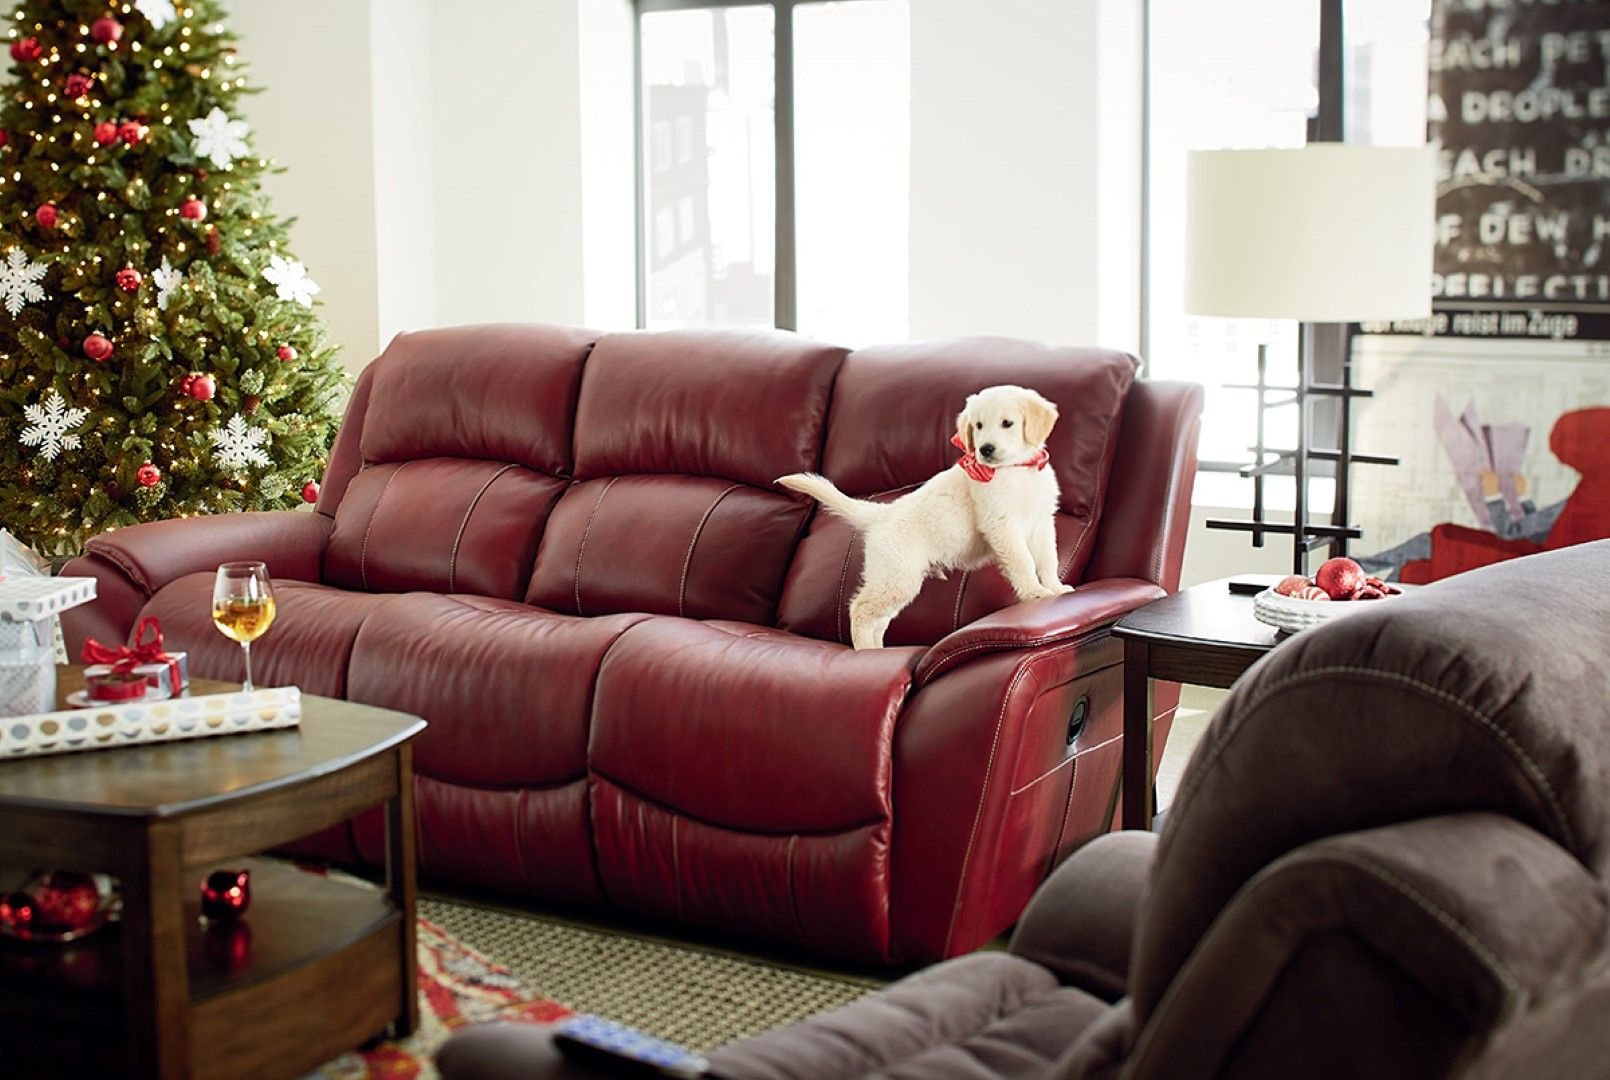 Furniture lazyboy sofas with a cute little dog and also a christmas